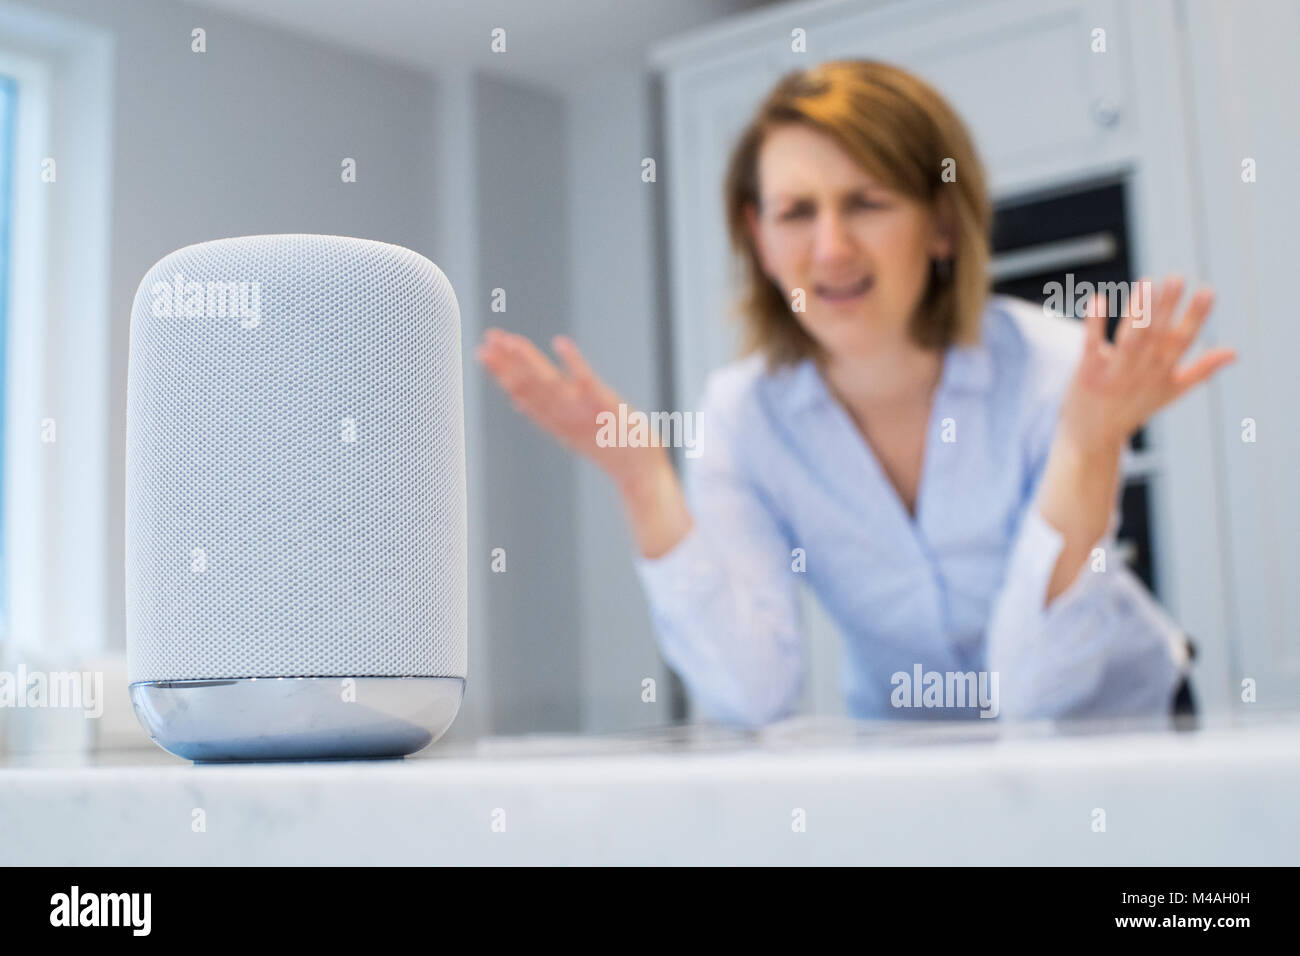 Frustrated Woman In Kitchen Asking Digital Assistant Question Stock Photo